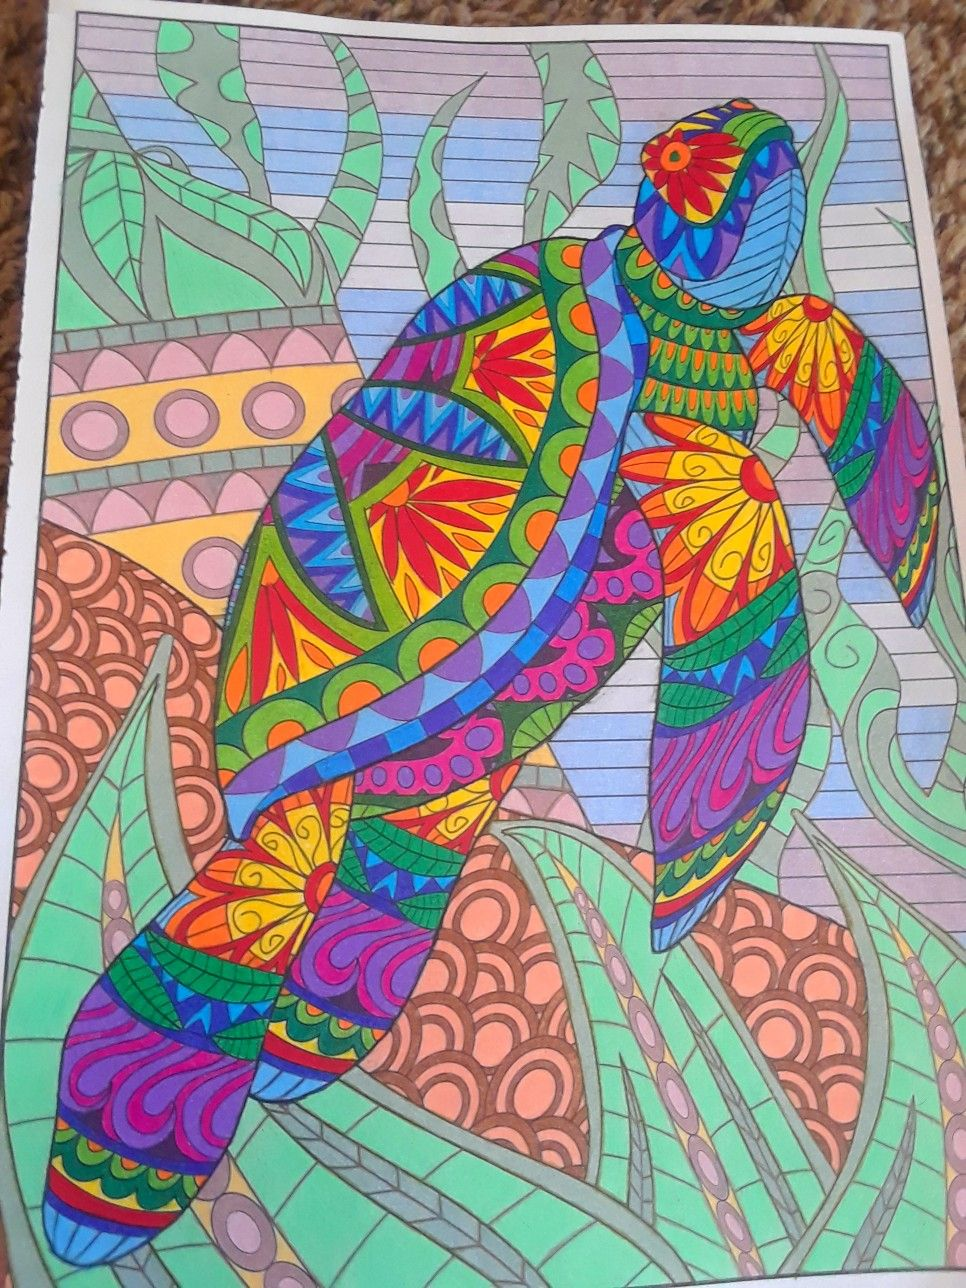 Timeless creations creatures of beauty by donna kay adult coloring pages coloring books